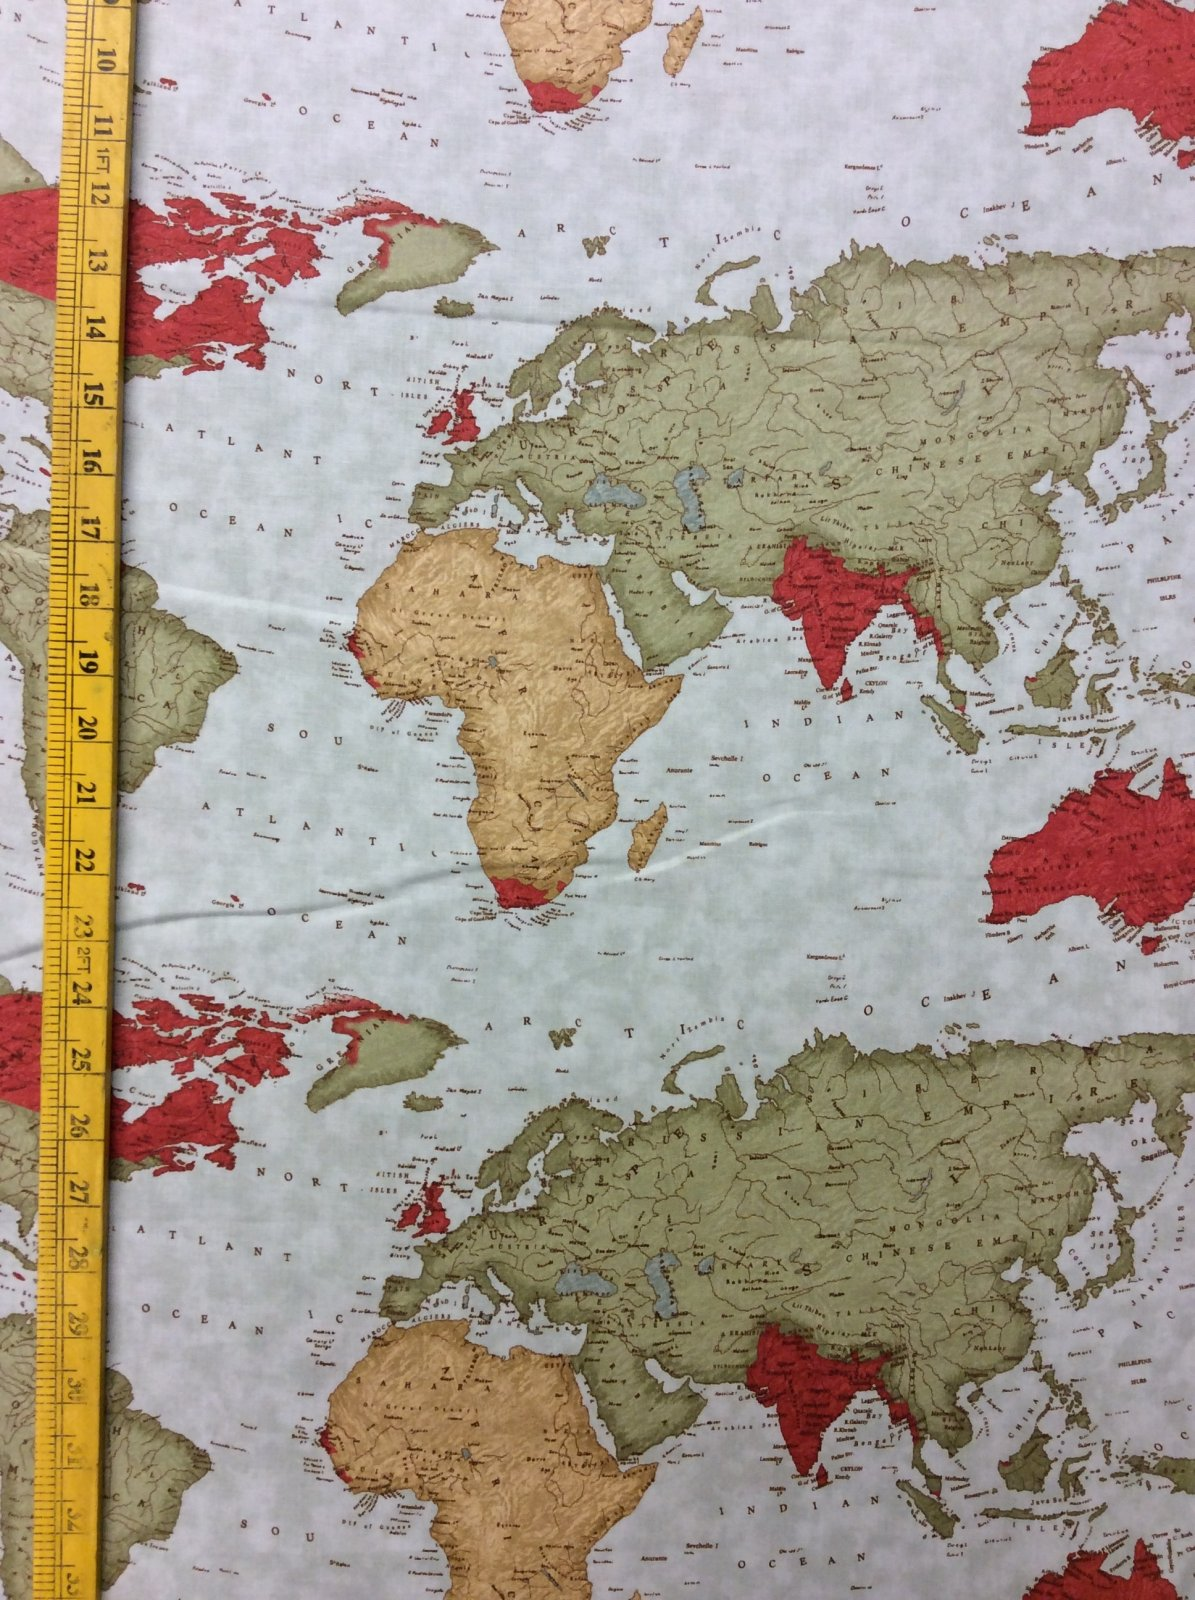 Map of the World Atlas Continent Quilt Cotton Quilting Fabric MO08